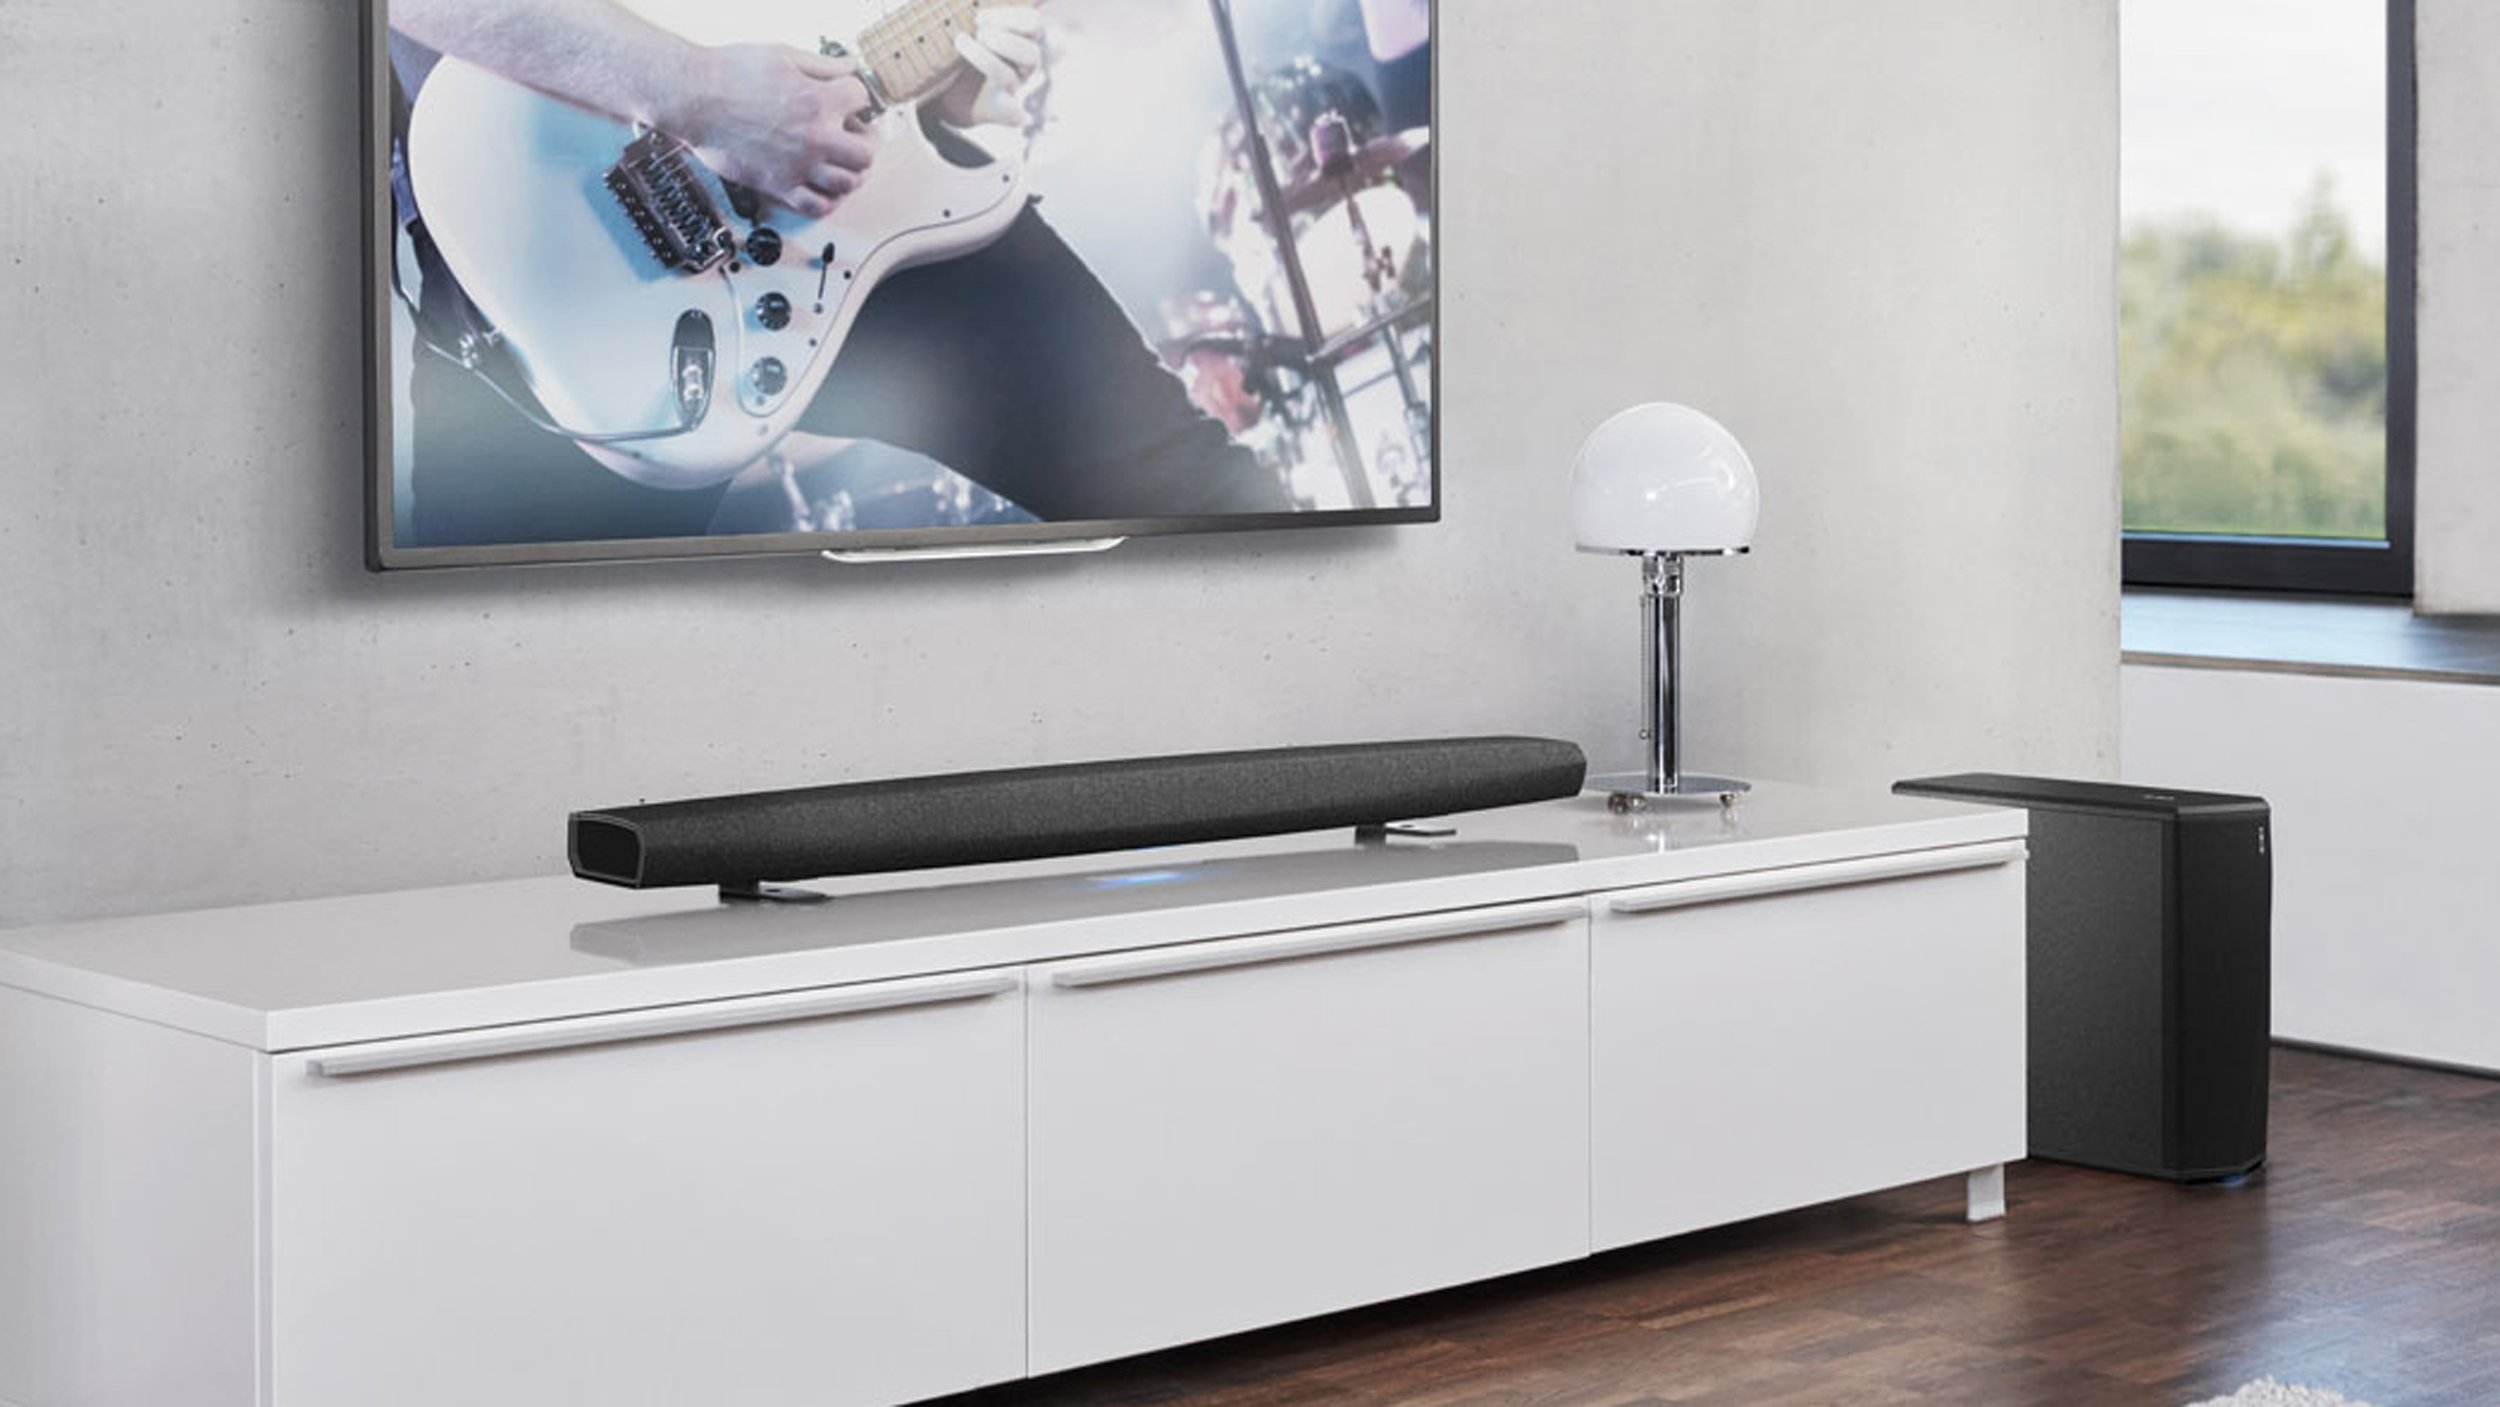 Best soundbars 2019: The top UK soundbars and soundbases to boost